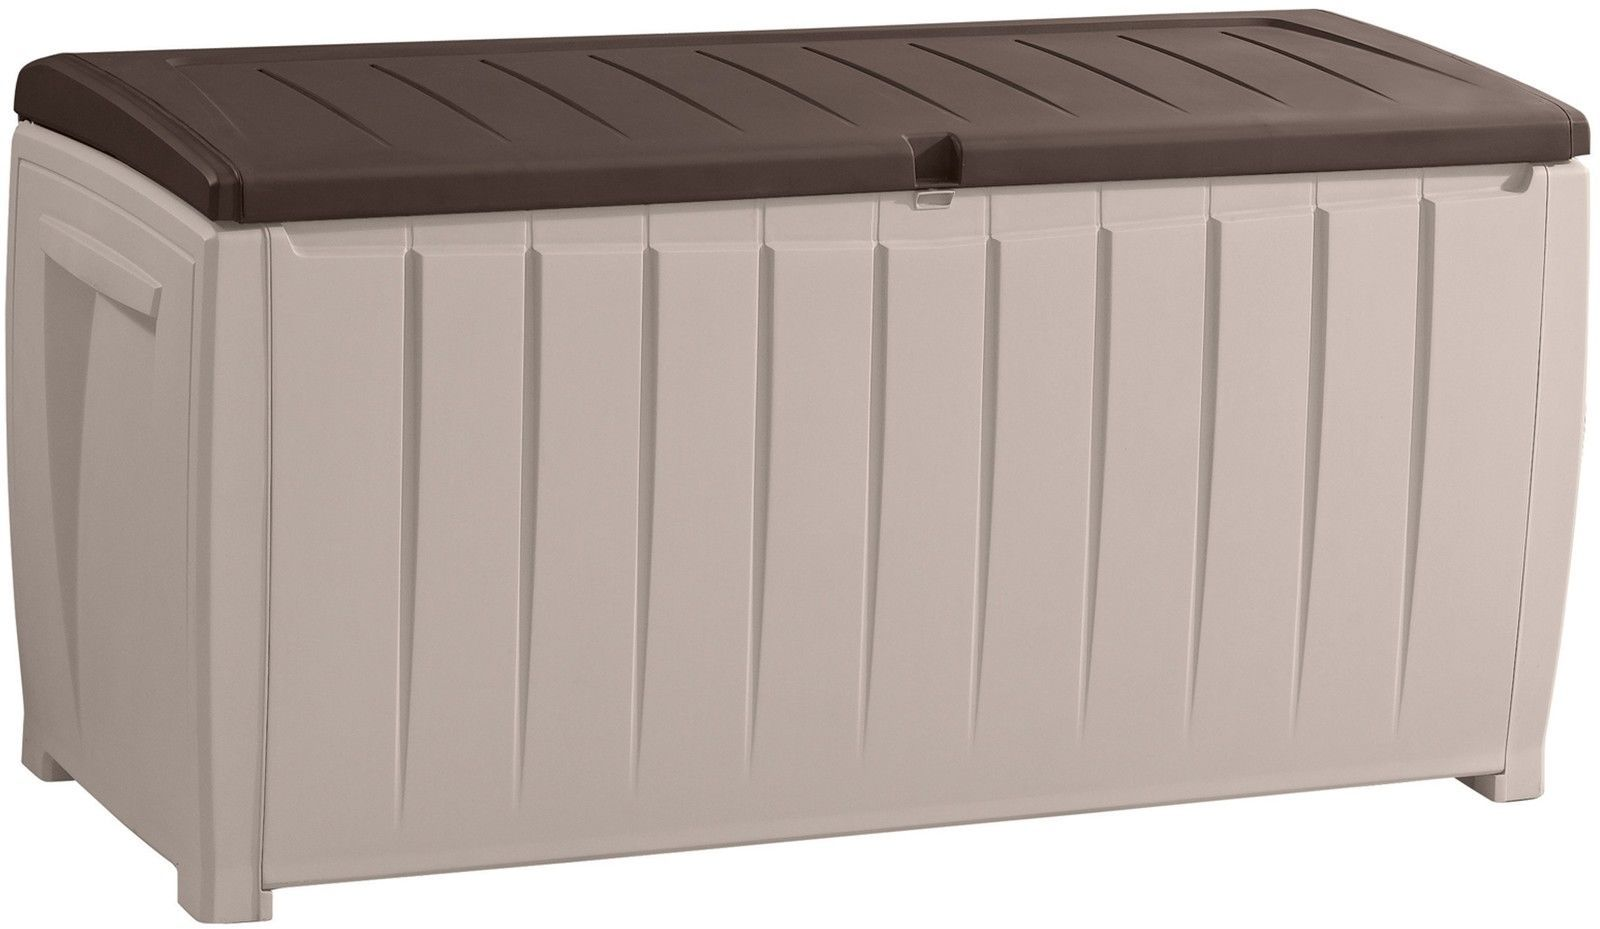 Patio Cushion Storage Outdoor Cabinet Boxes and 50 similar items